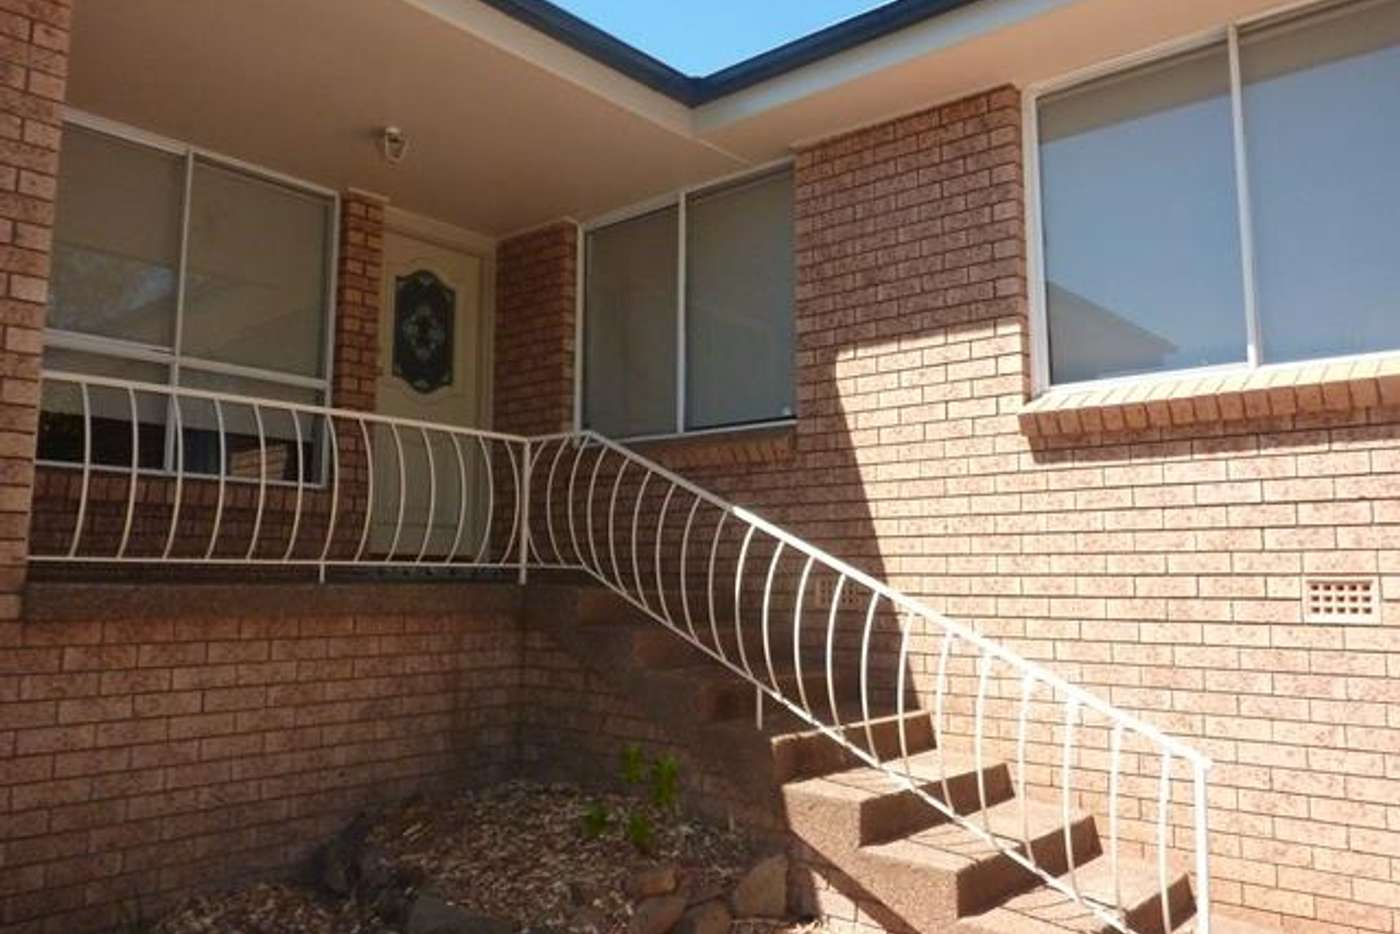 Main view of Homely house listing, 55 Racecourse Road, Orange NSW 2800